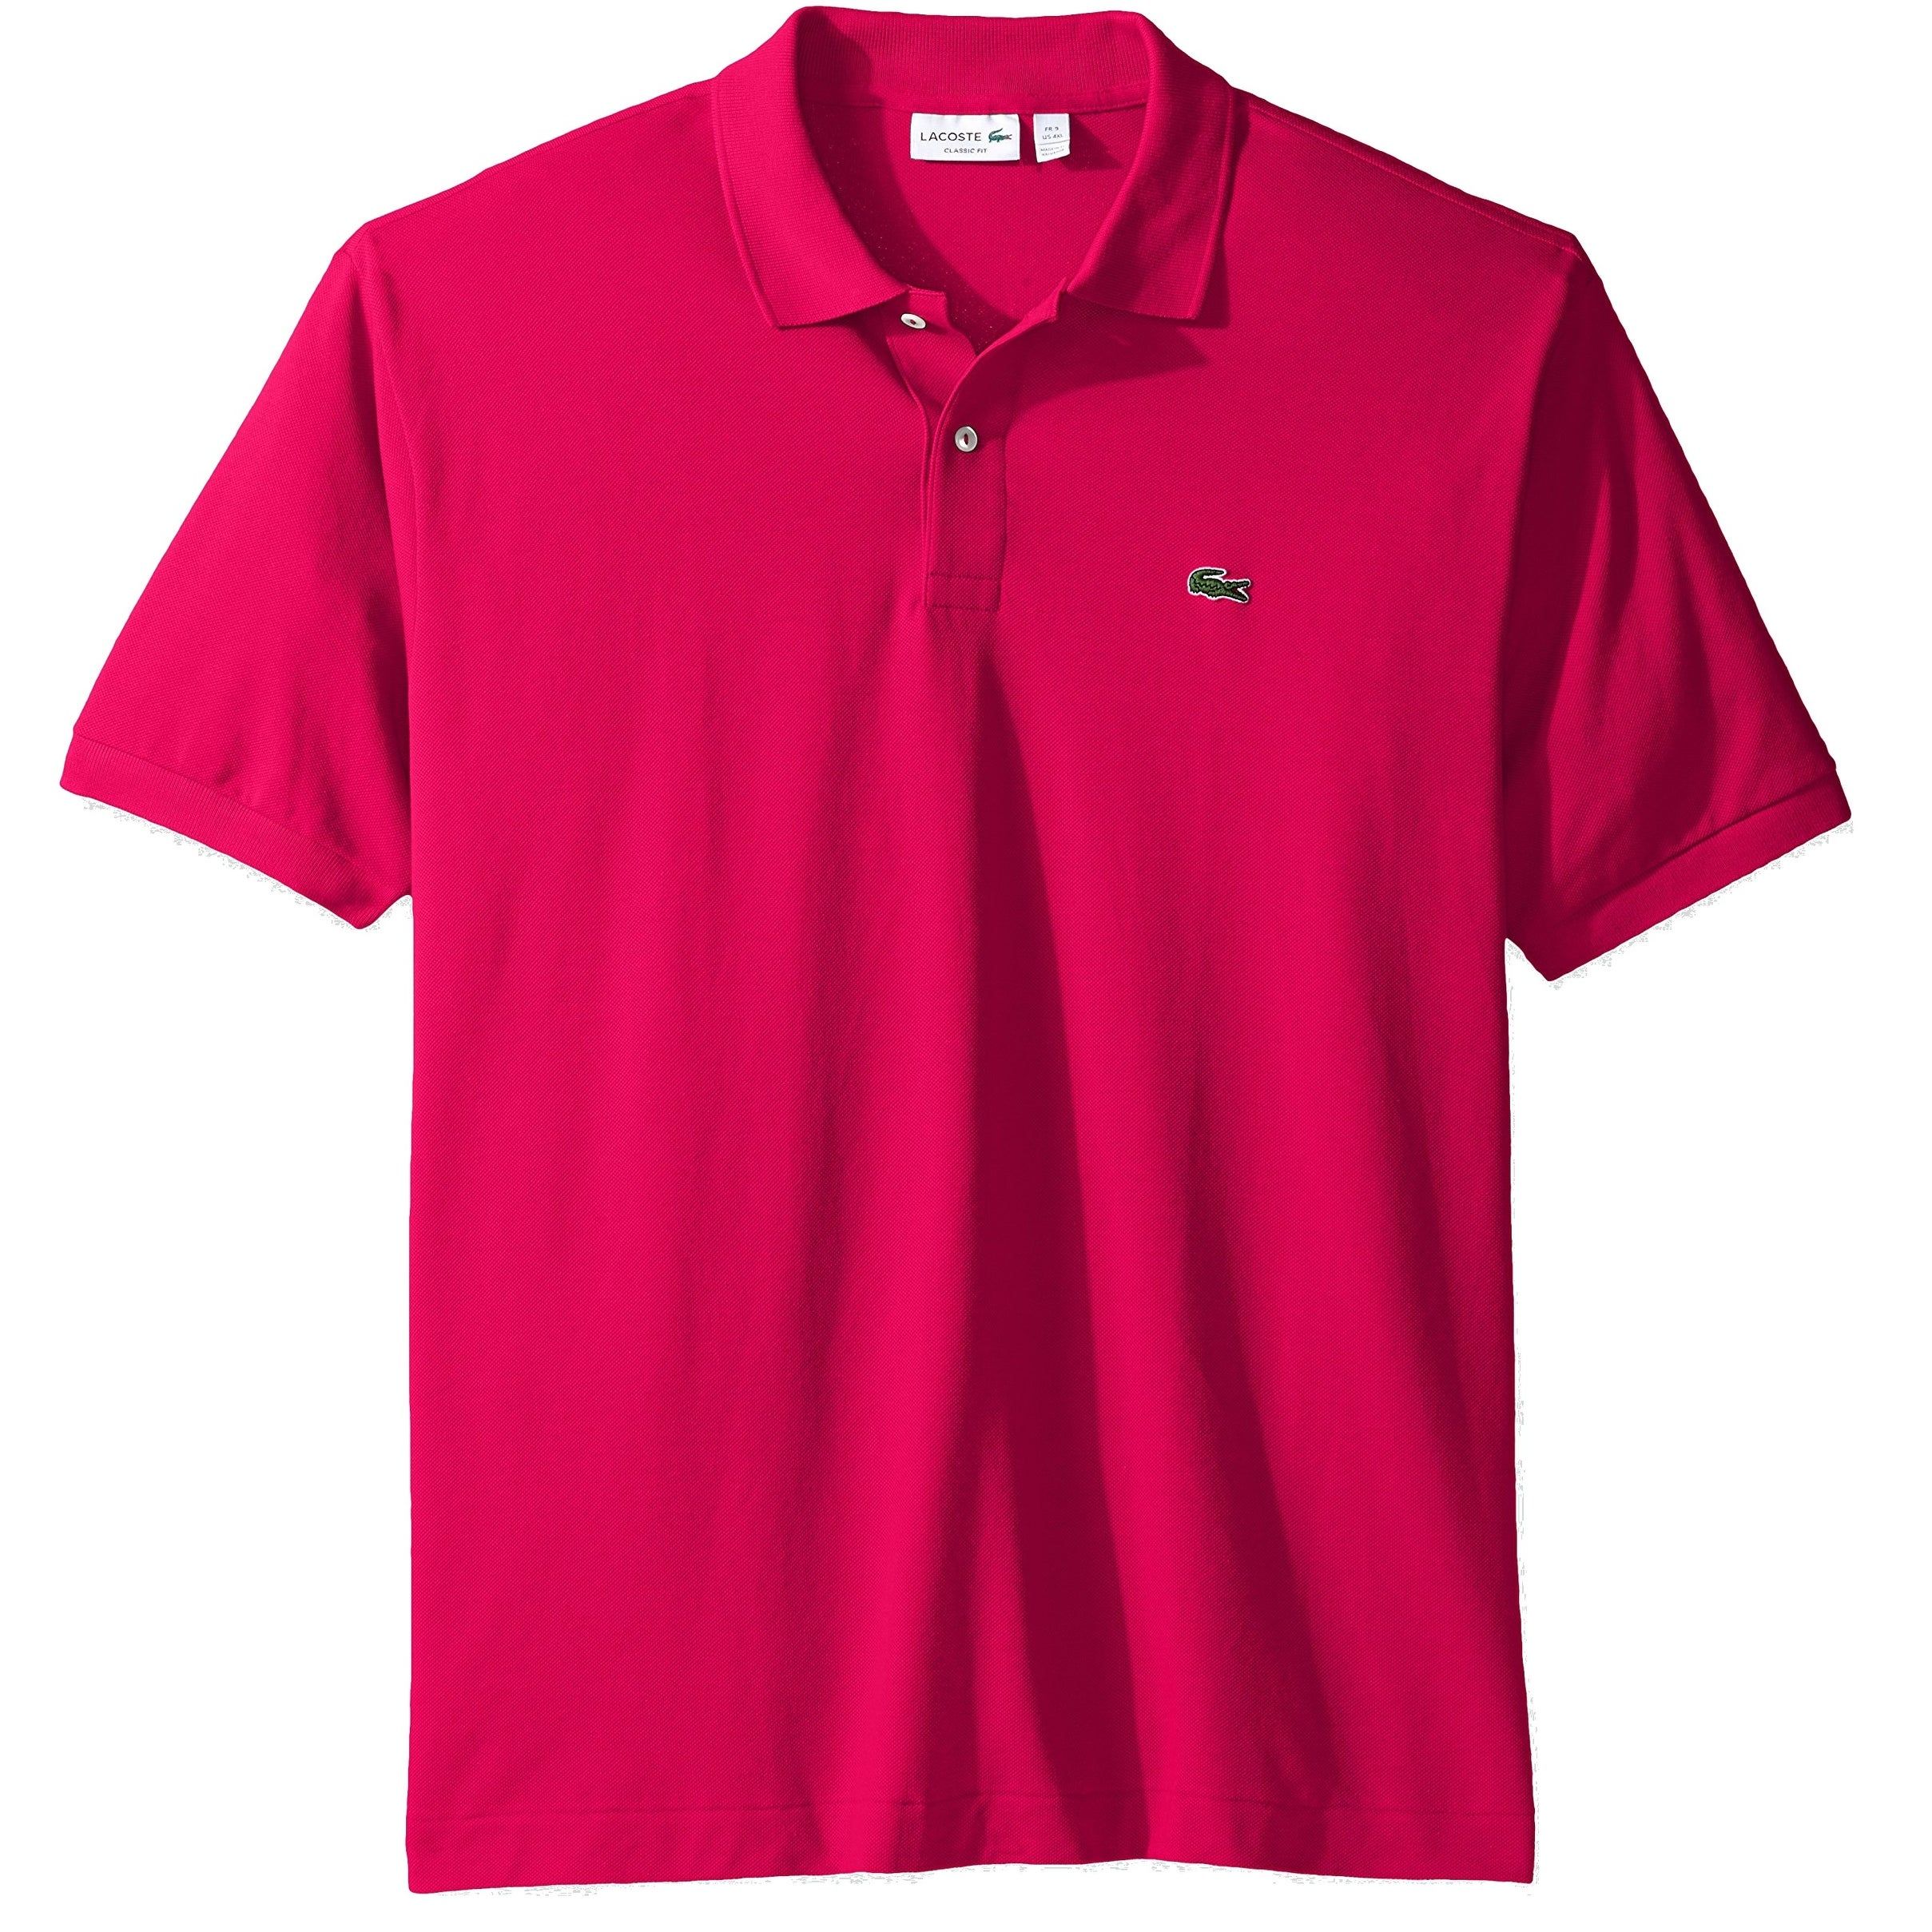 Shop Lacoste New Pink Mens Size Fr 8 Us 3xl Classic Fit Polo Rugby